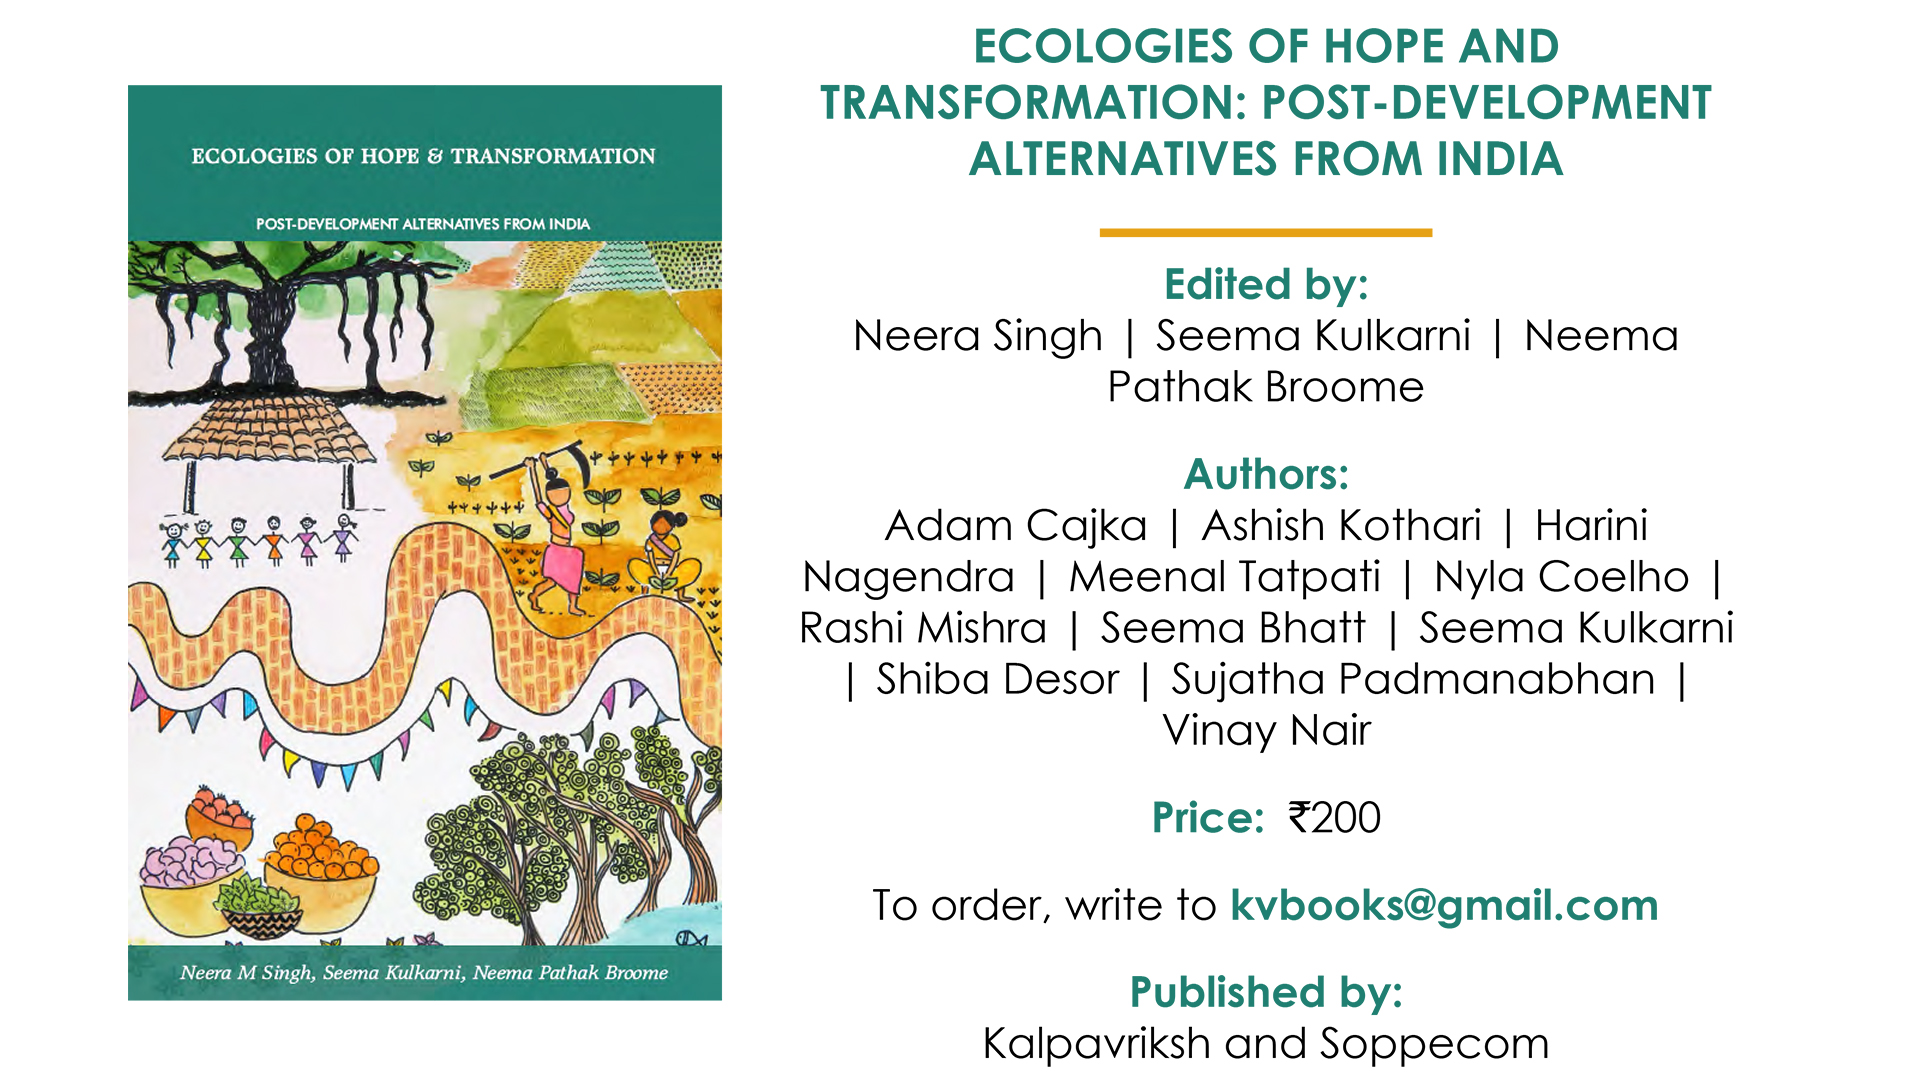 Ecologies of Hope and Transformation: Post-Development Alternatives from India